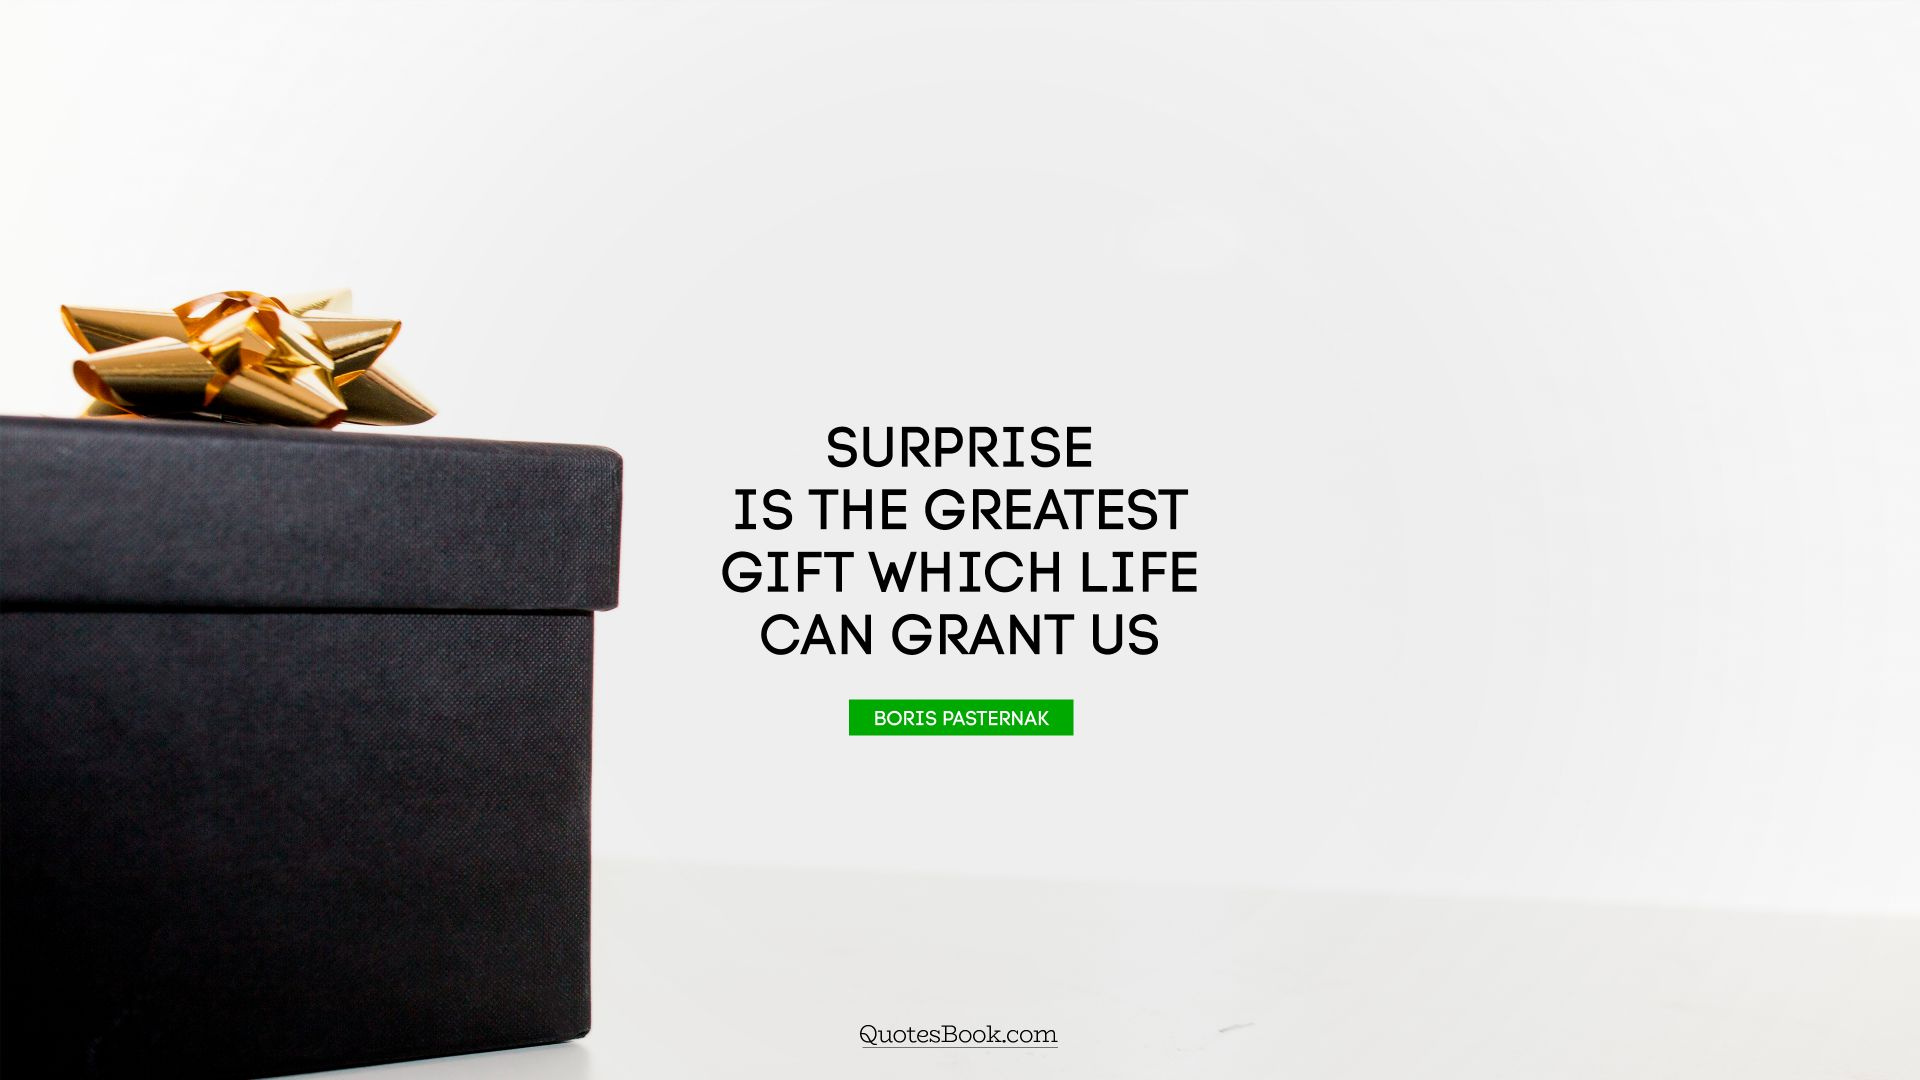 Surprise is the greatest gift which life can grant us. - Quote by Boris Pasternak